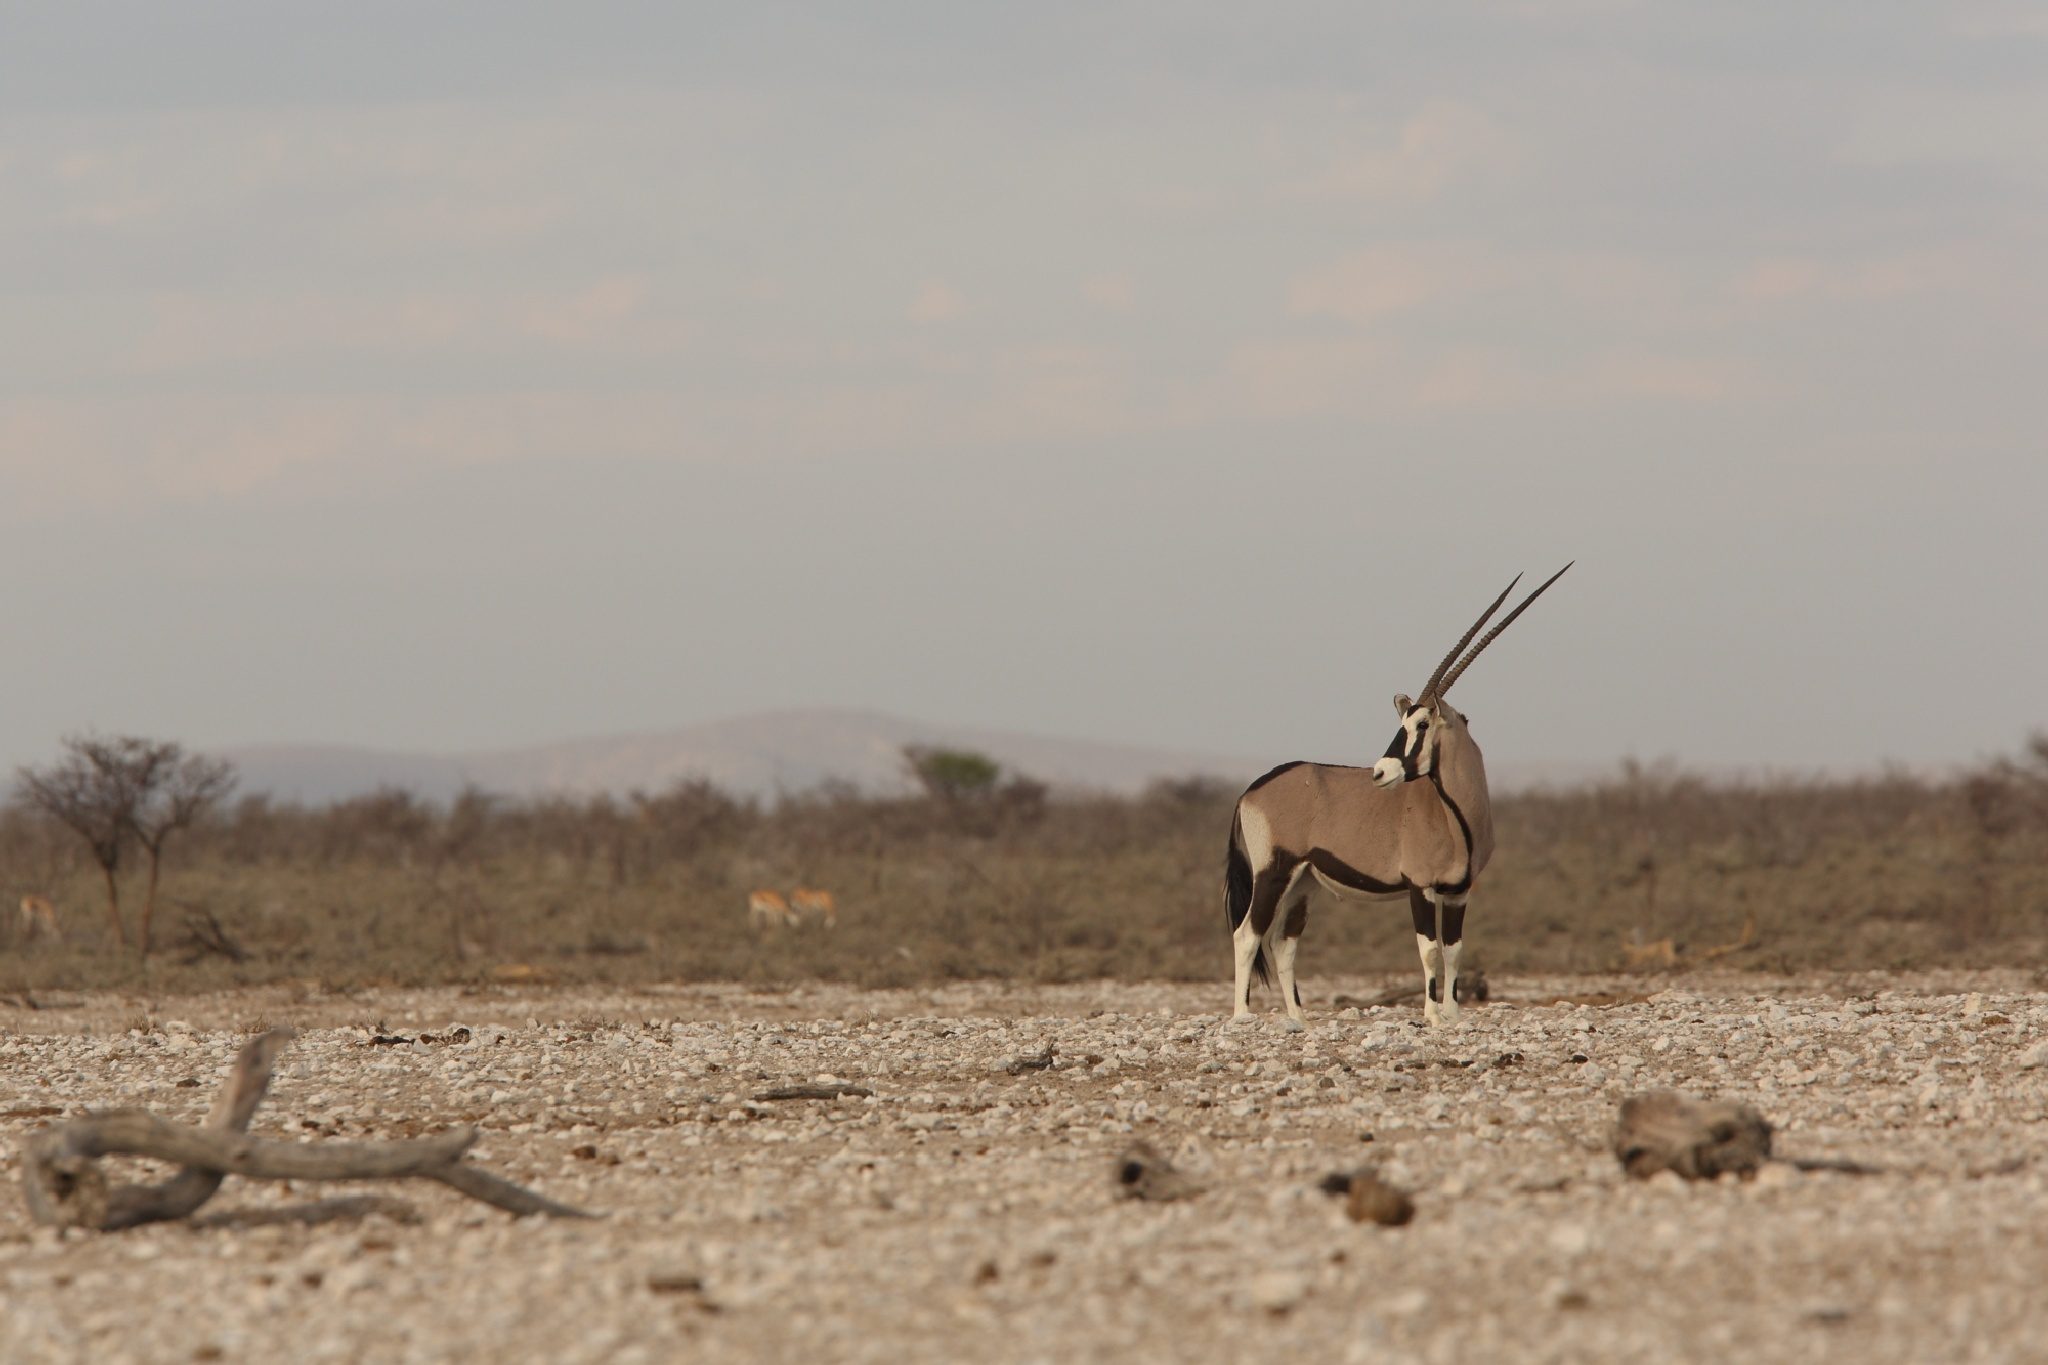 Oryx in the Etosha NP by Thomas Retterath